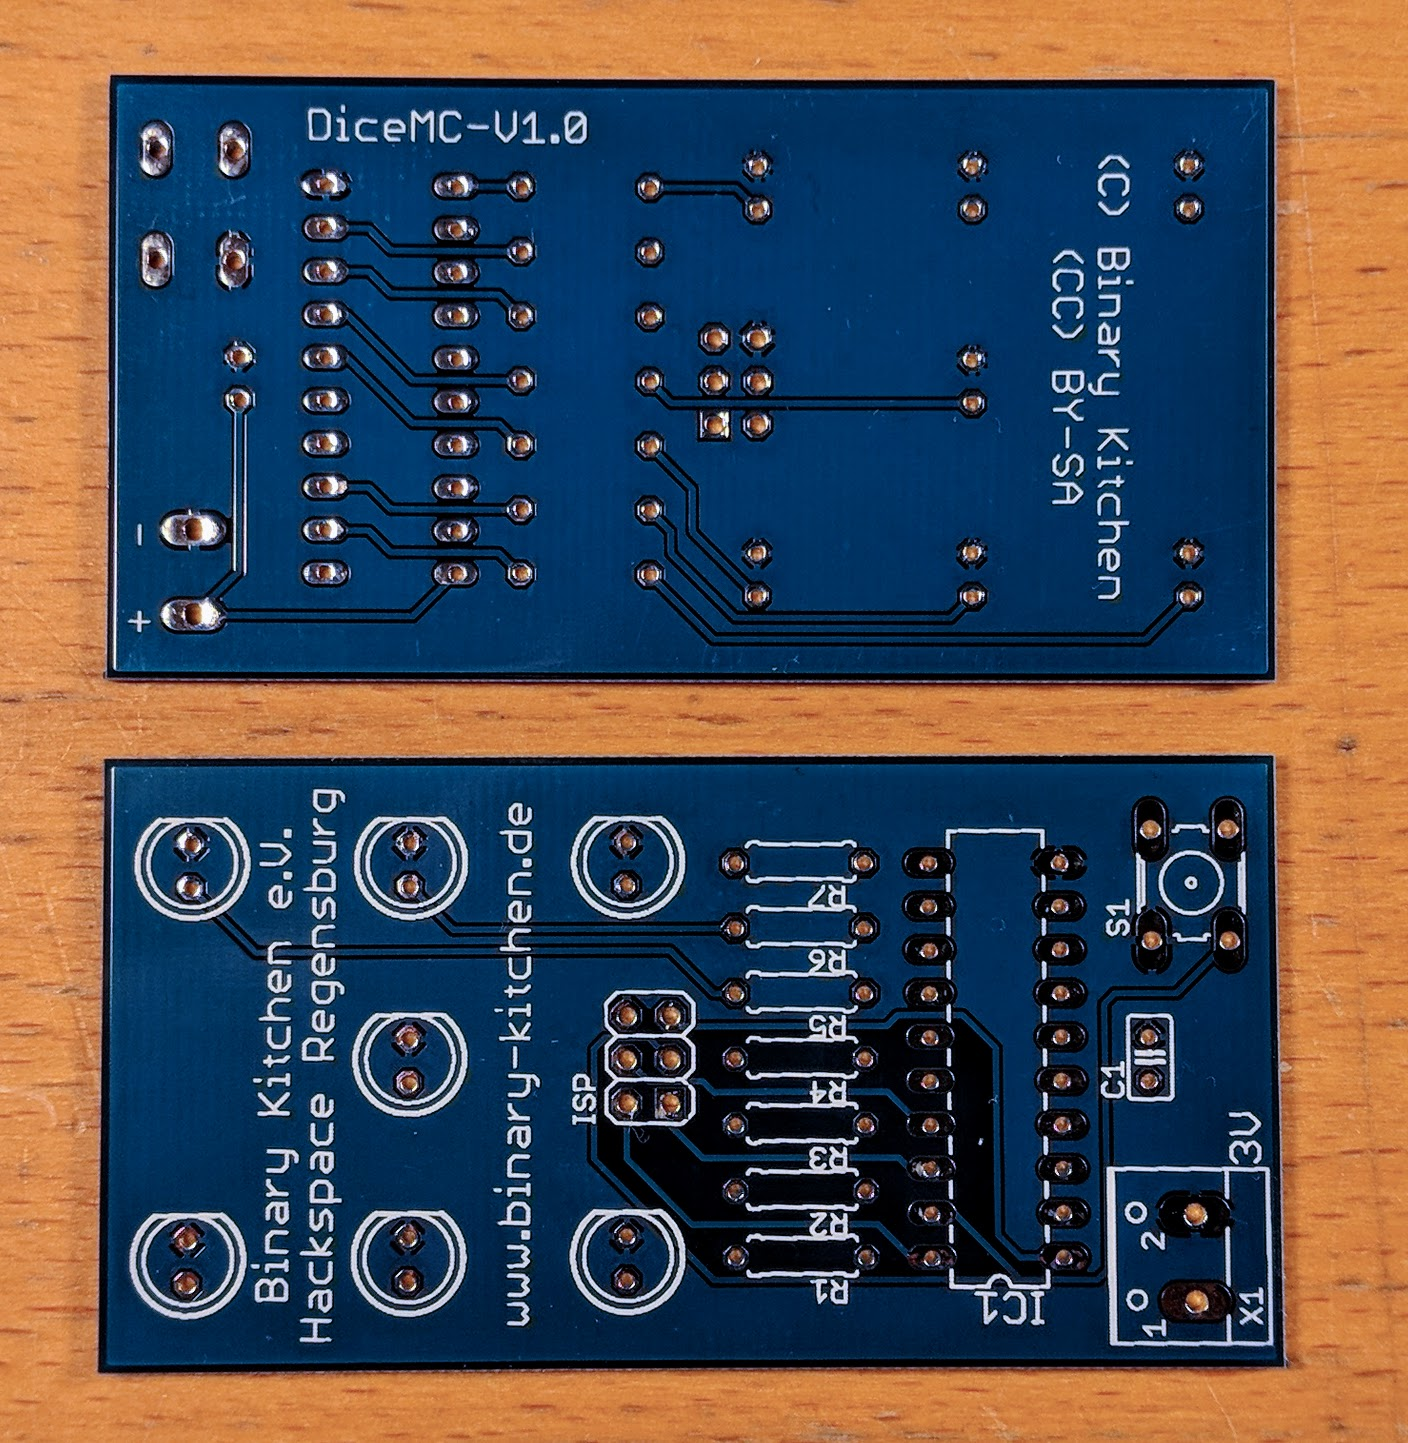 Dice with Microcontroller - A simple dice kit ideal for beginners